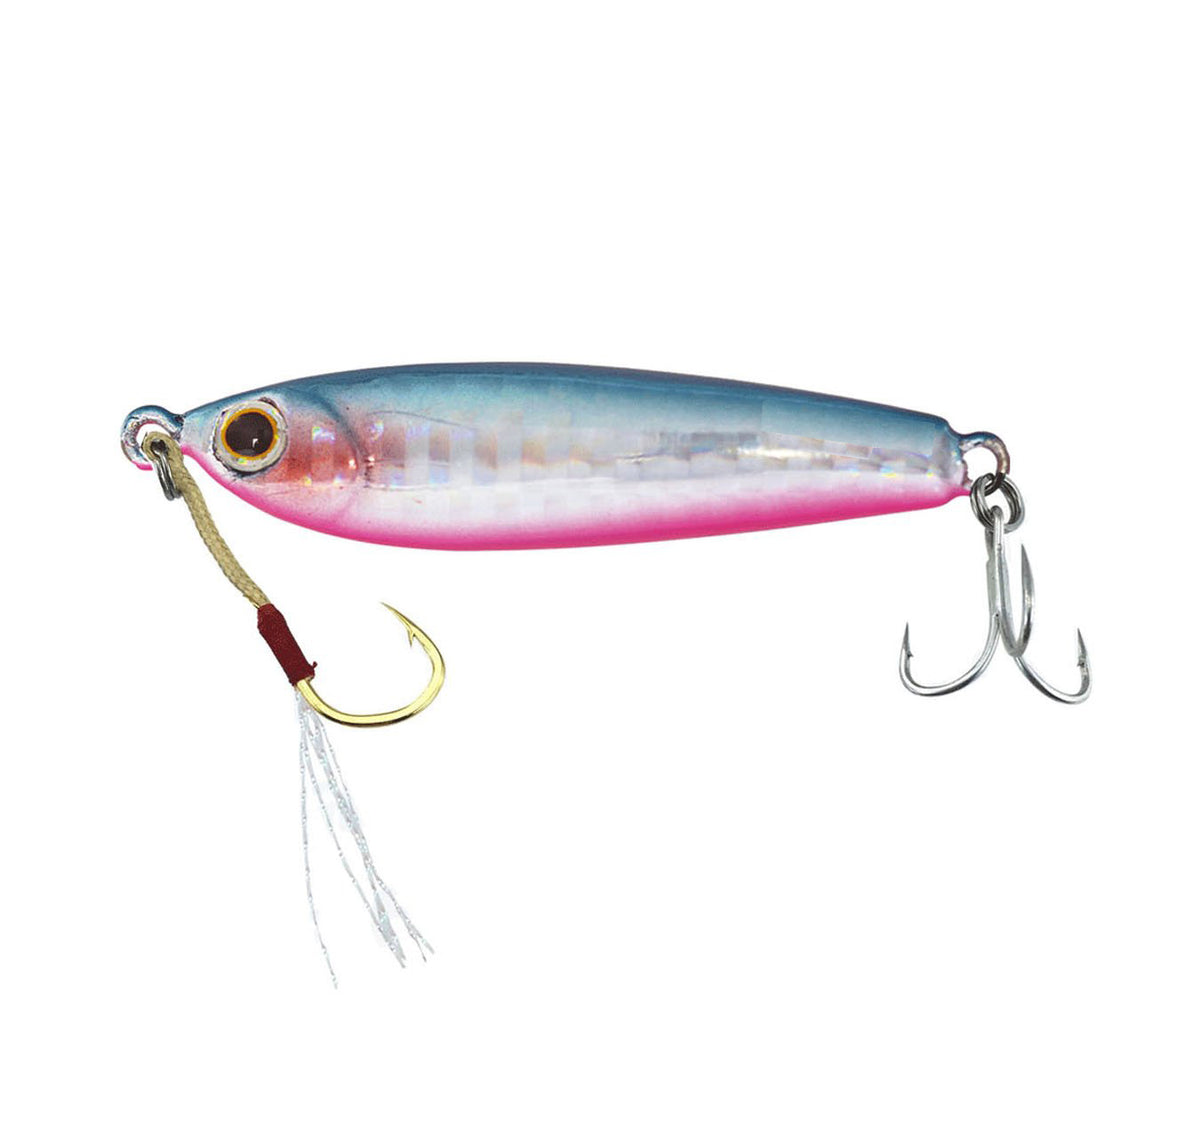 Jackson Gallop Assist Long Cast Jigs